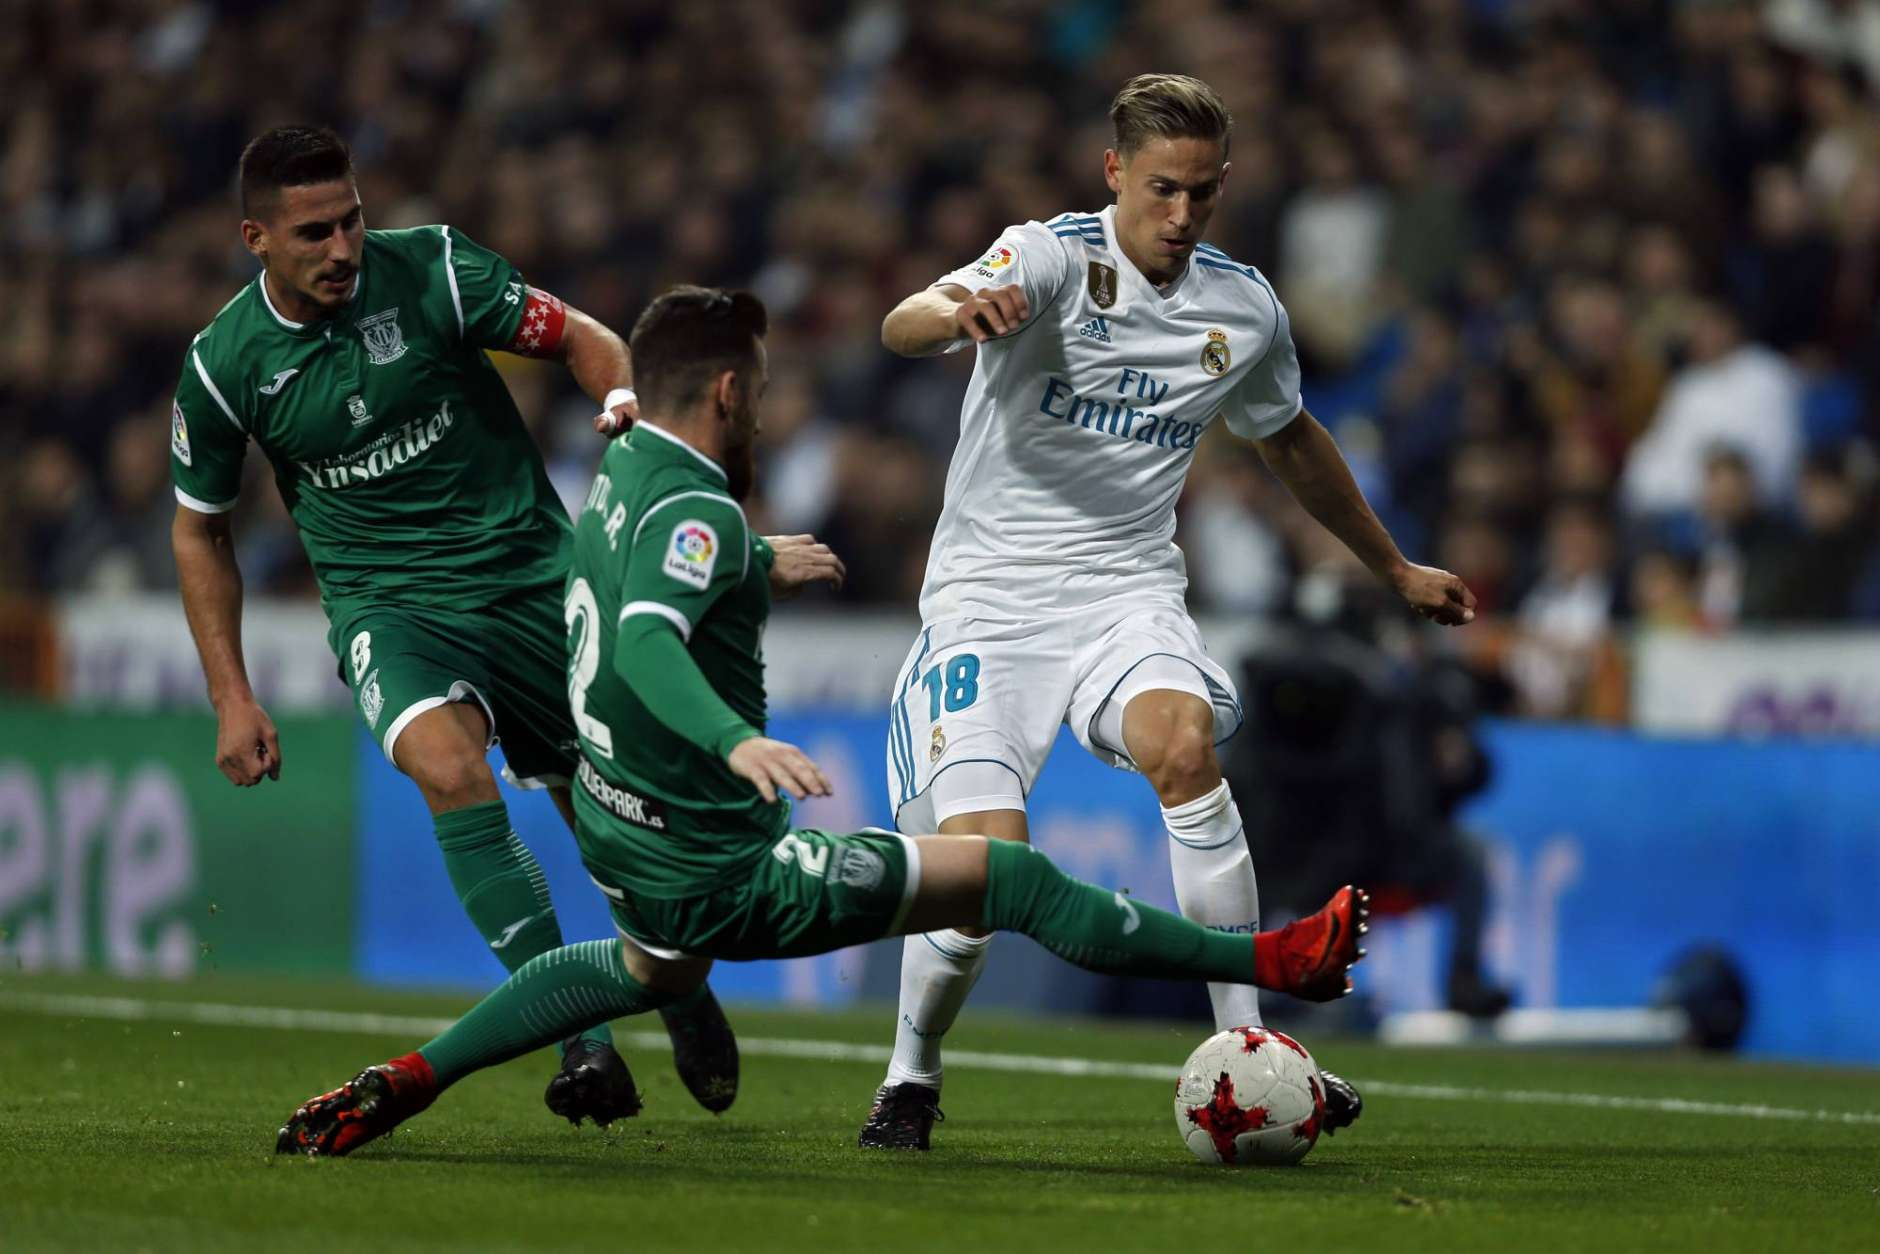 Real Madrid beaten by Leganes at Bernabeu, eliminated from Copa del rey